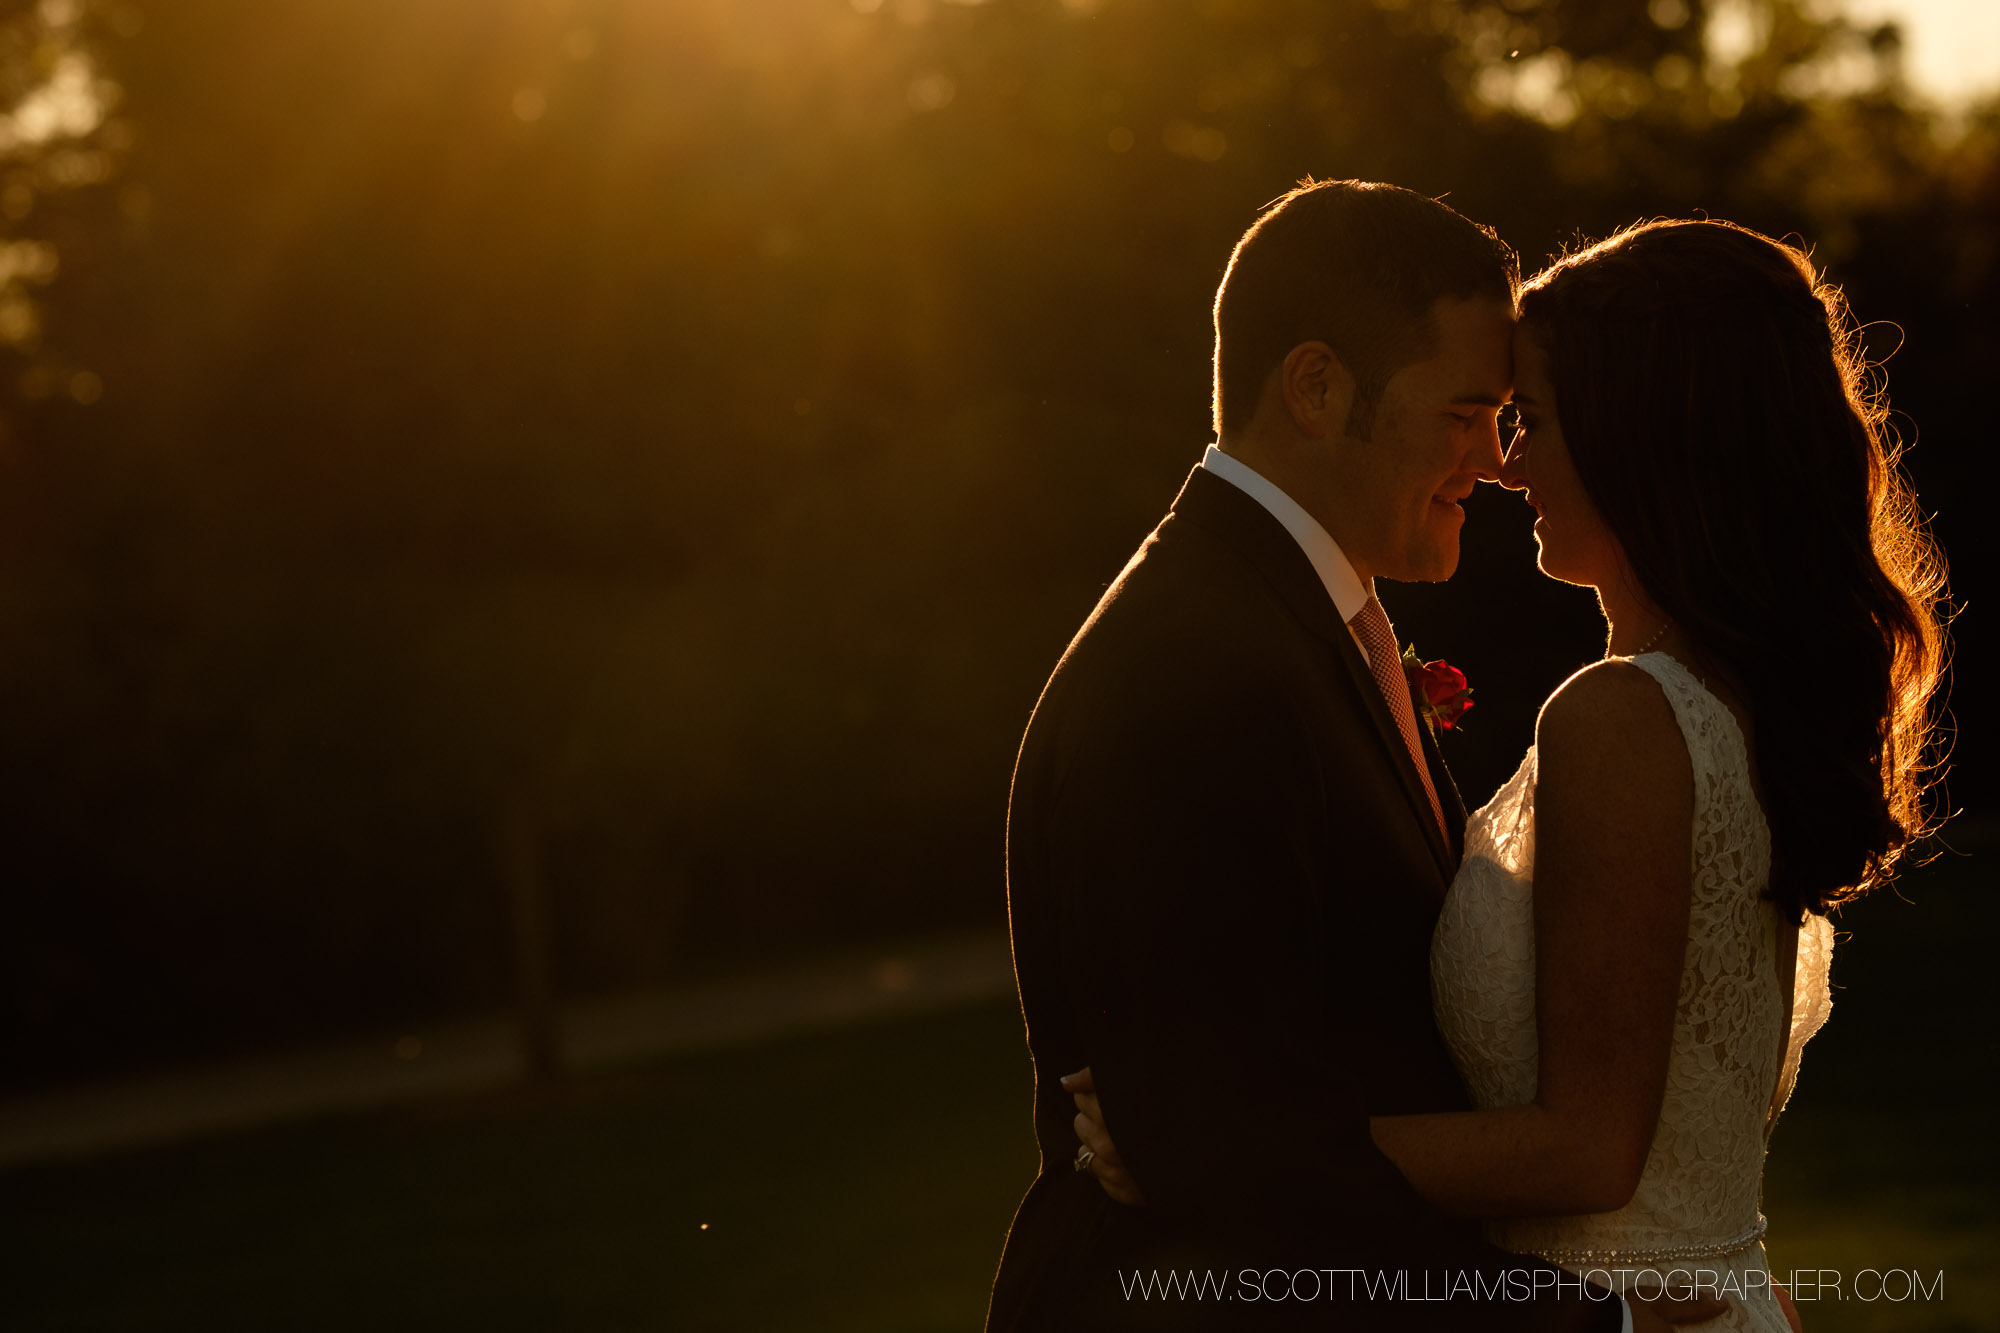 A sunset wedding portrait from a small, intimate wedding at Langdon Hall in Cambridge, Ontario.